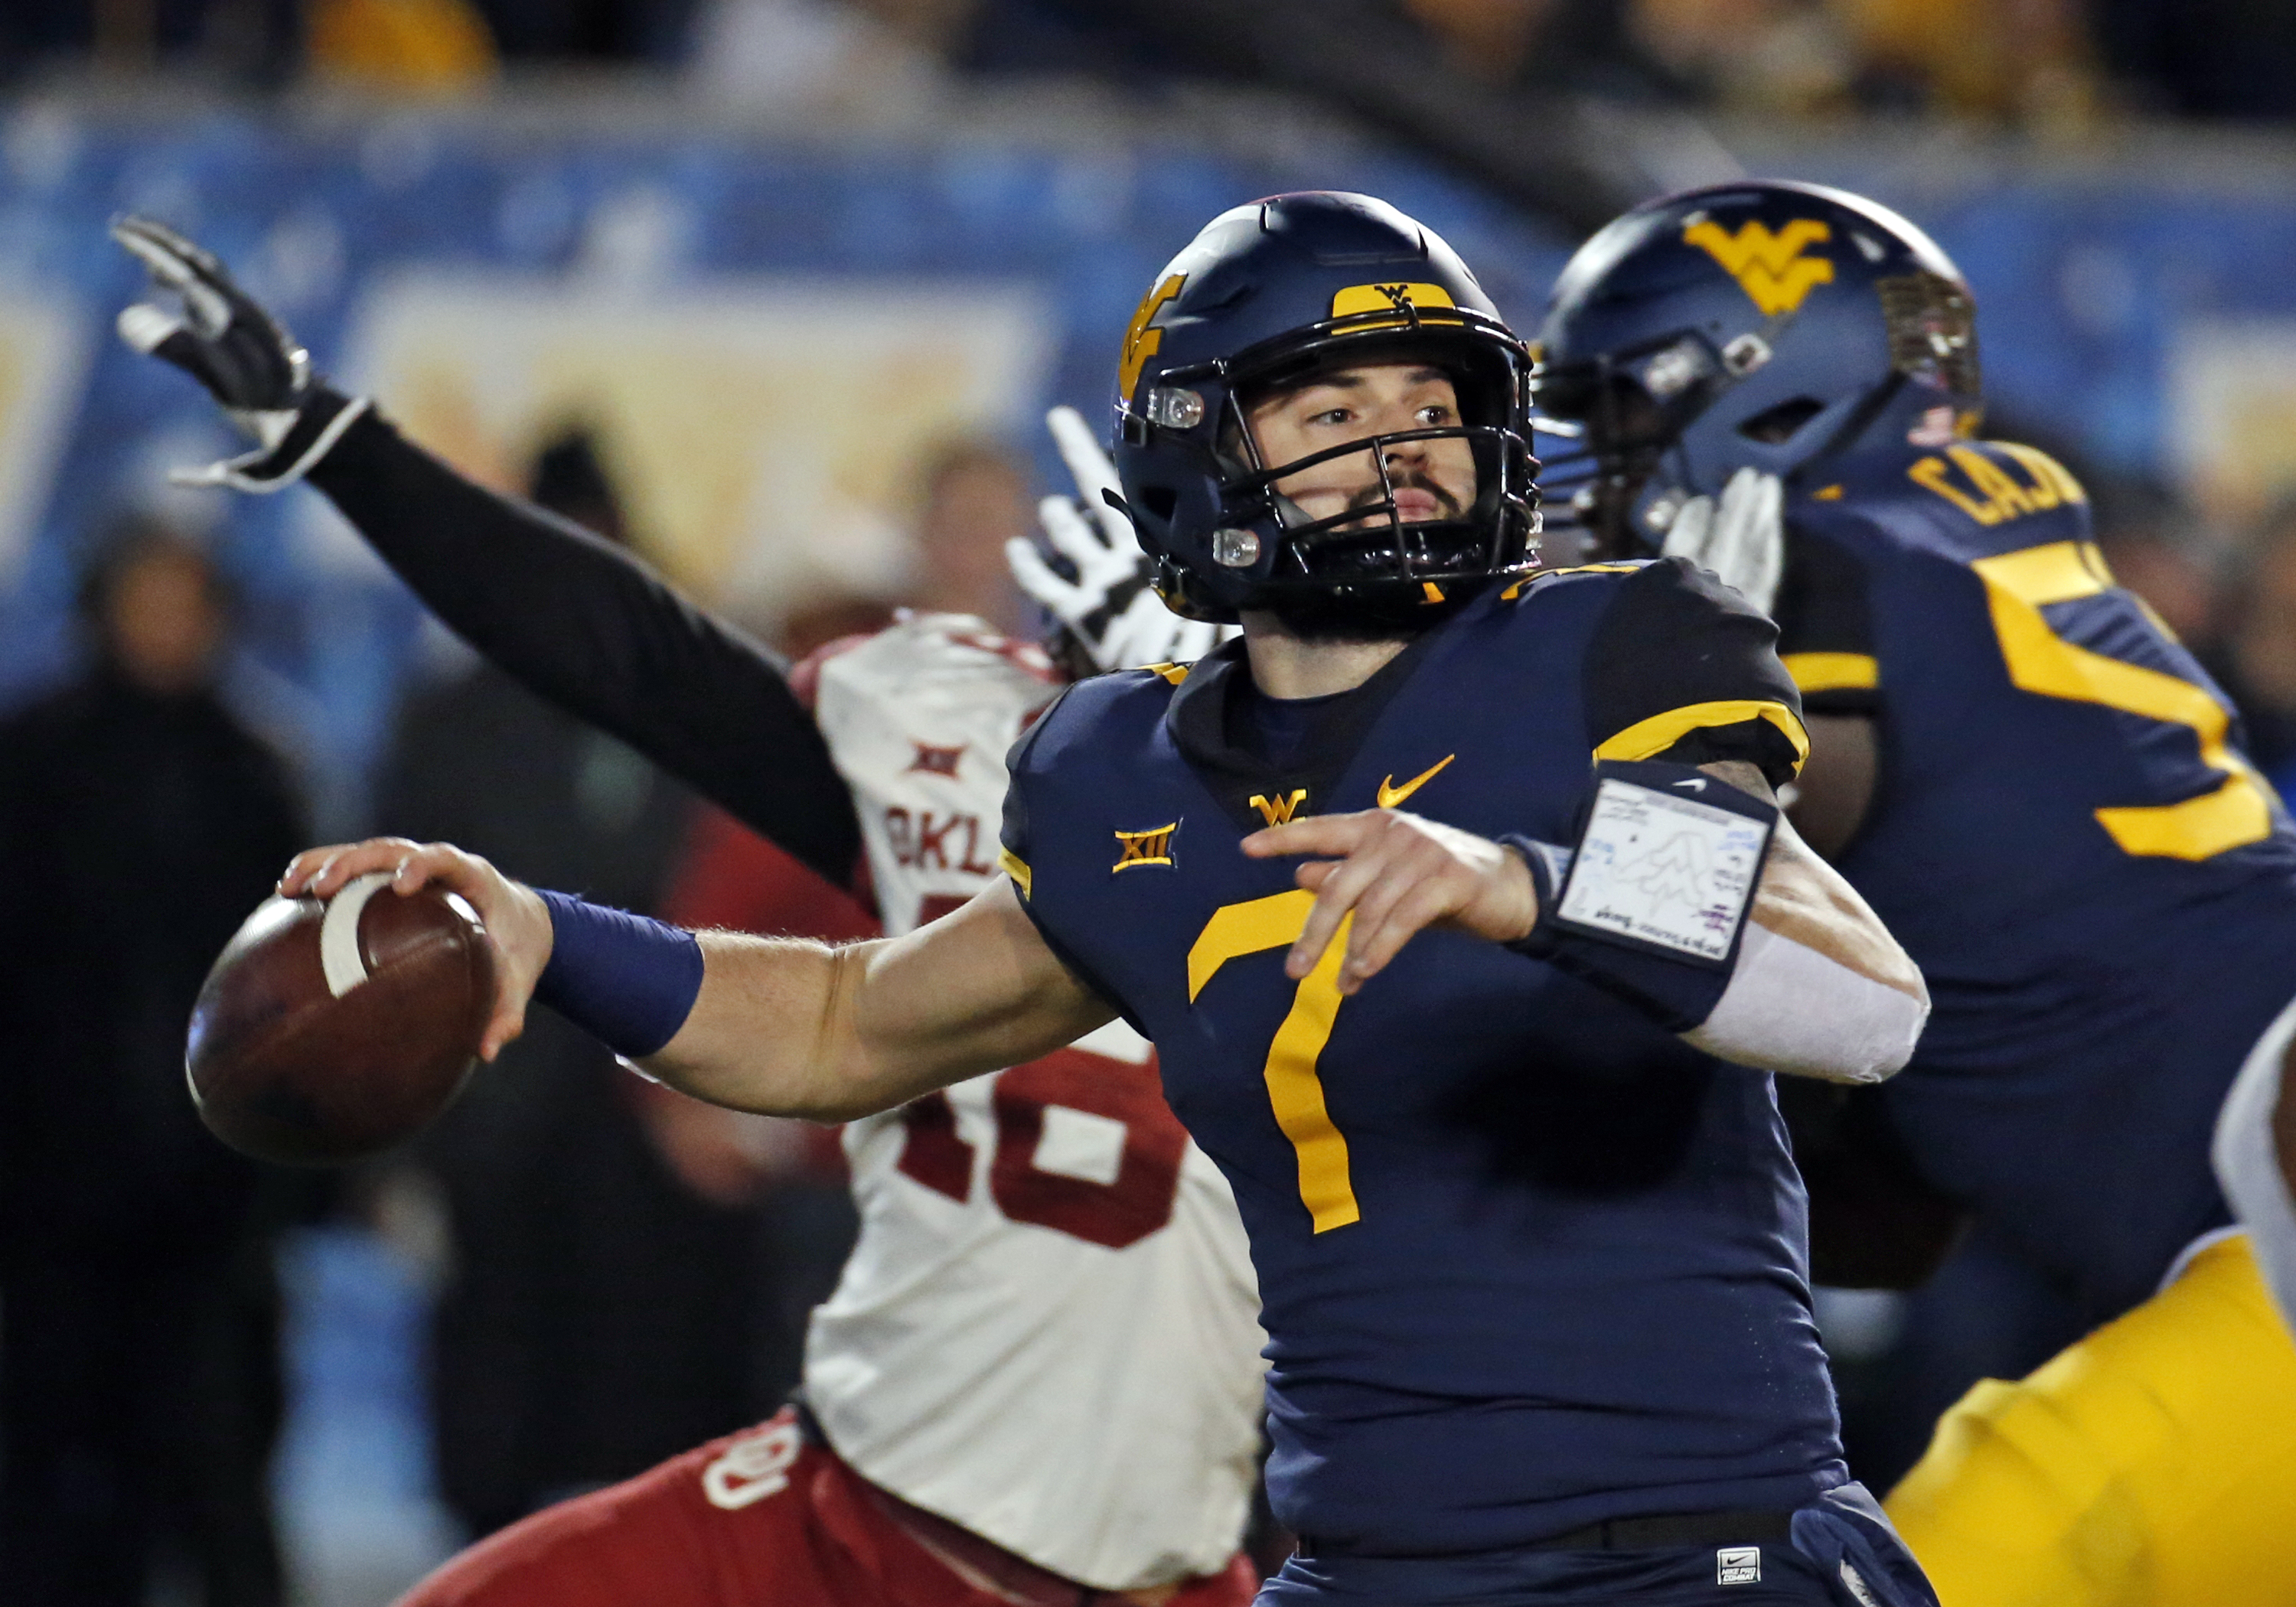 timeless design 5ee92 2b676 Chargers present at WVU pro day, set to meet with QB Will ...